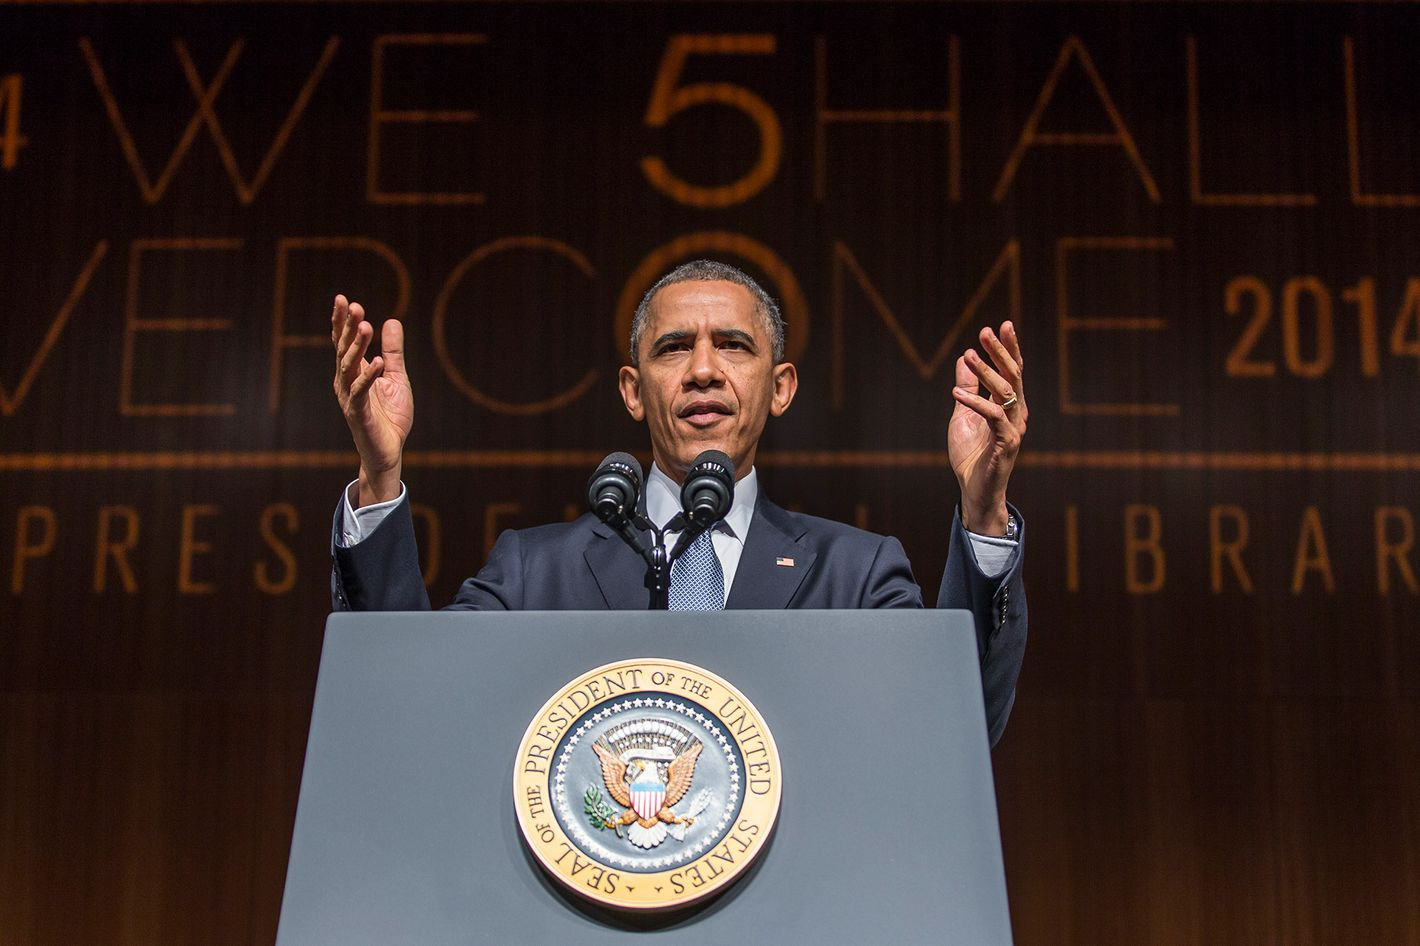 AUSTIN, TX - APRIL 10:  U.S. President Barack Obama gives the keynote speech on the third day of the Civil Rights Summit at the LBJ Presidential Library April 10, 2014 in Austin, Texas. The summit marks the 50th anniversary of the passing of the Civil Rights Act legislation. (Photo by Ricardo Brazziell-Pool/Getty Images)